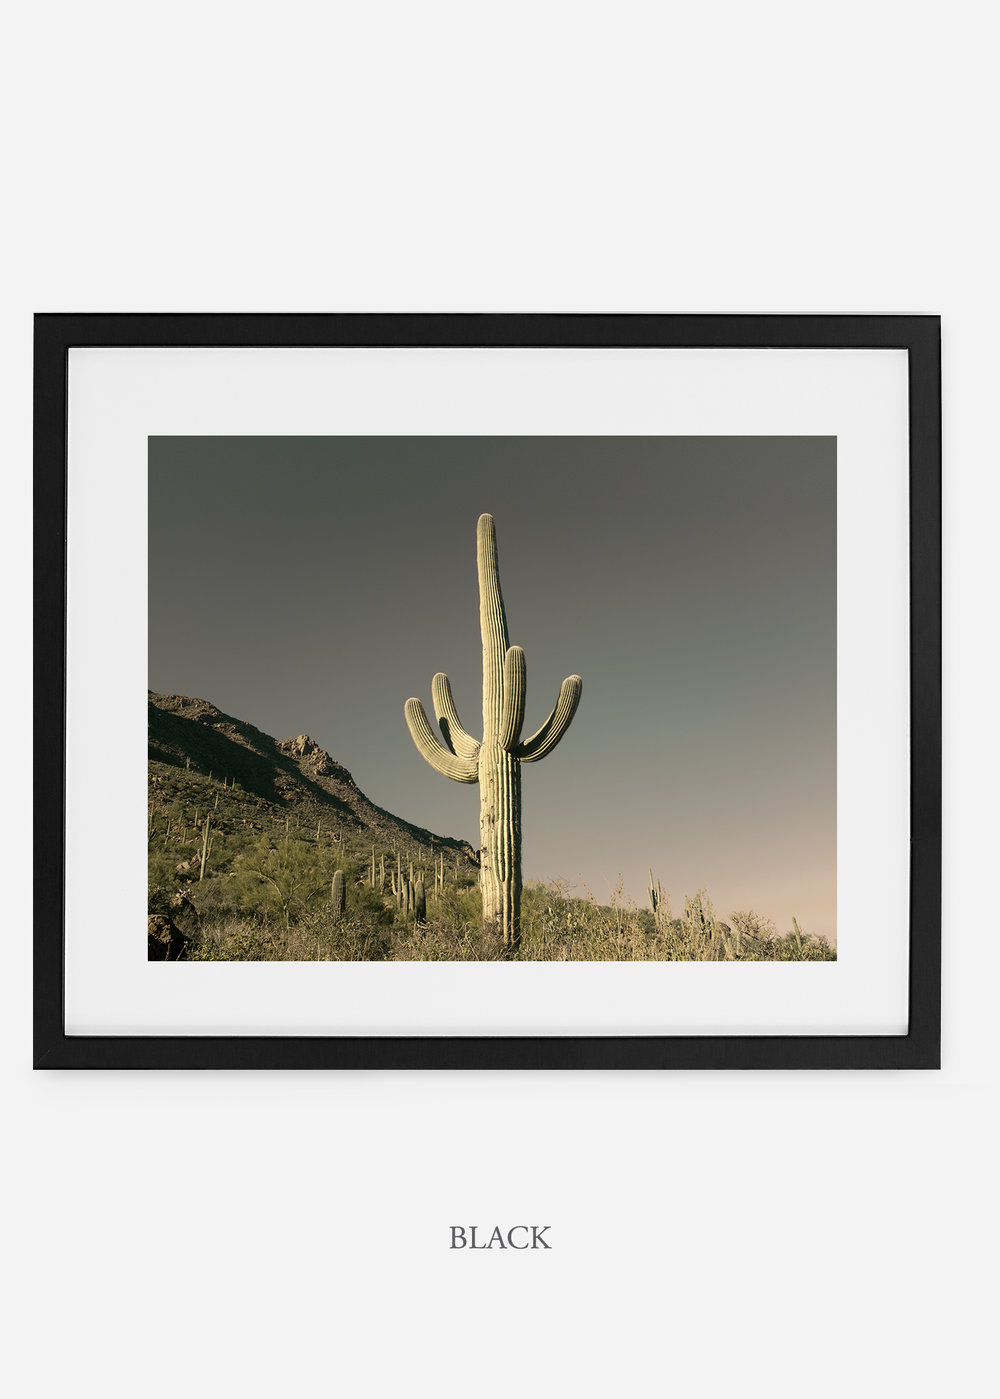 blackframe-saguaroNo.19-wildercalifornia-art-wallart-cactusprint-homedecor-prints-arizona-botanical-artwork-interiordesign.jpg